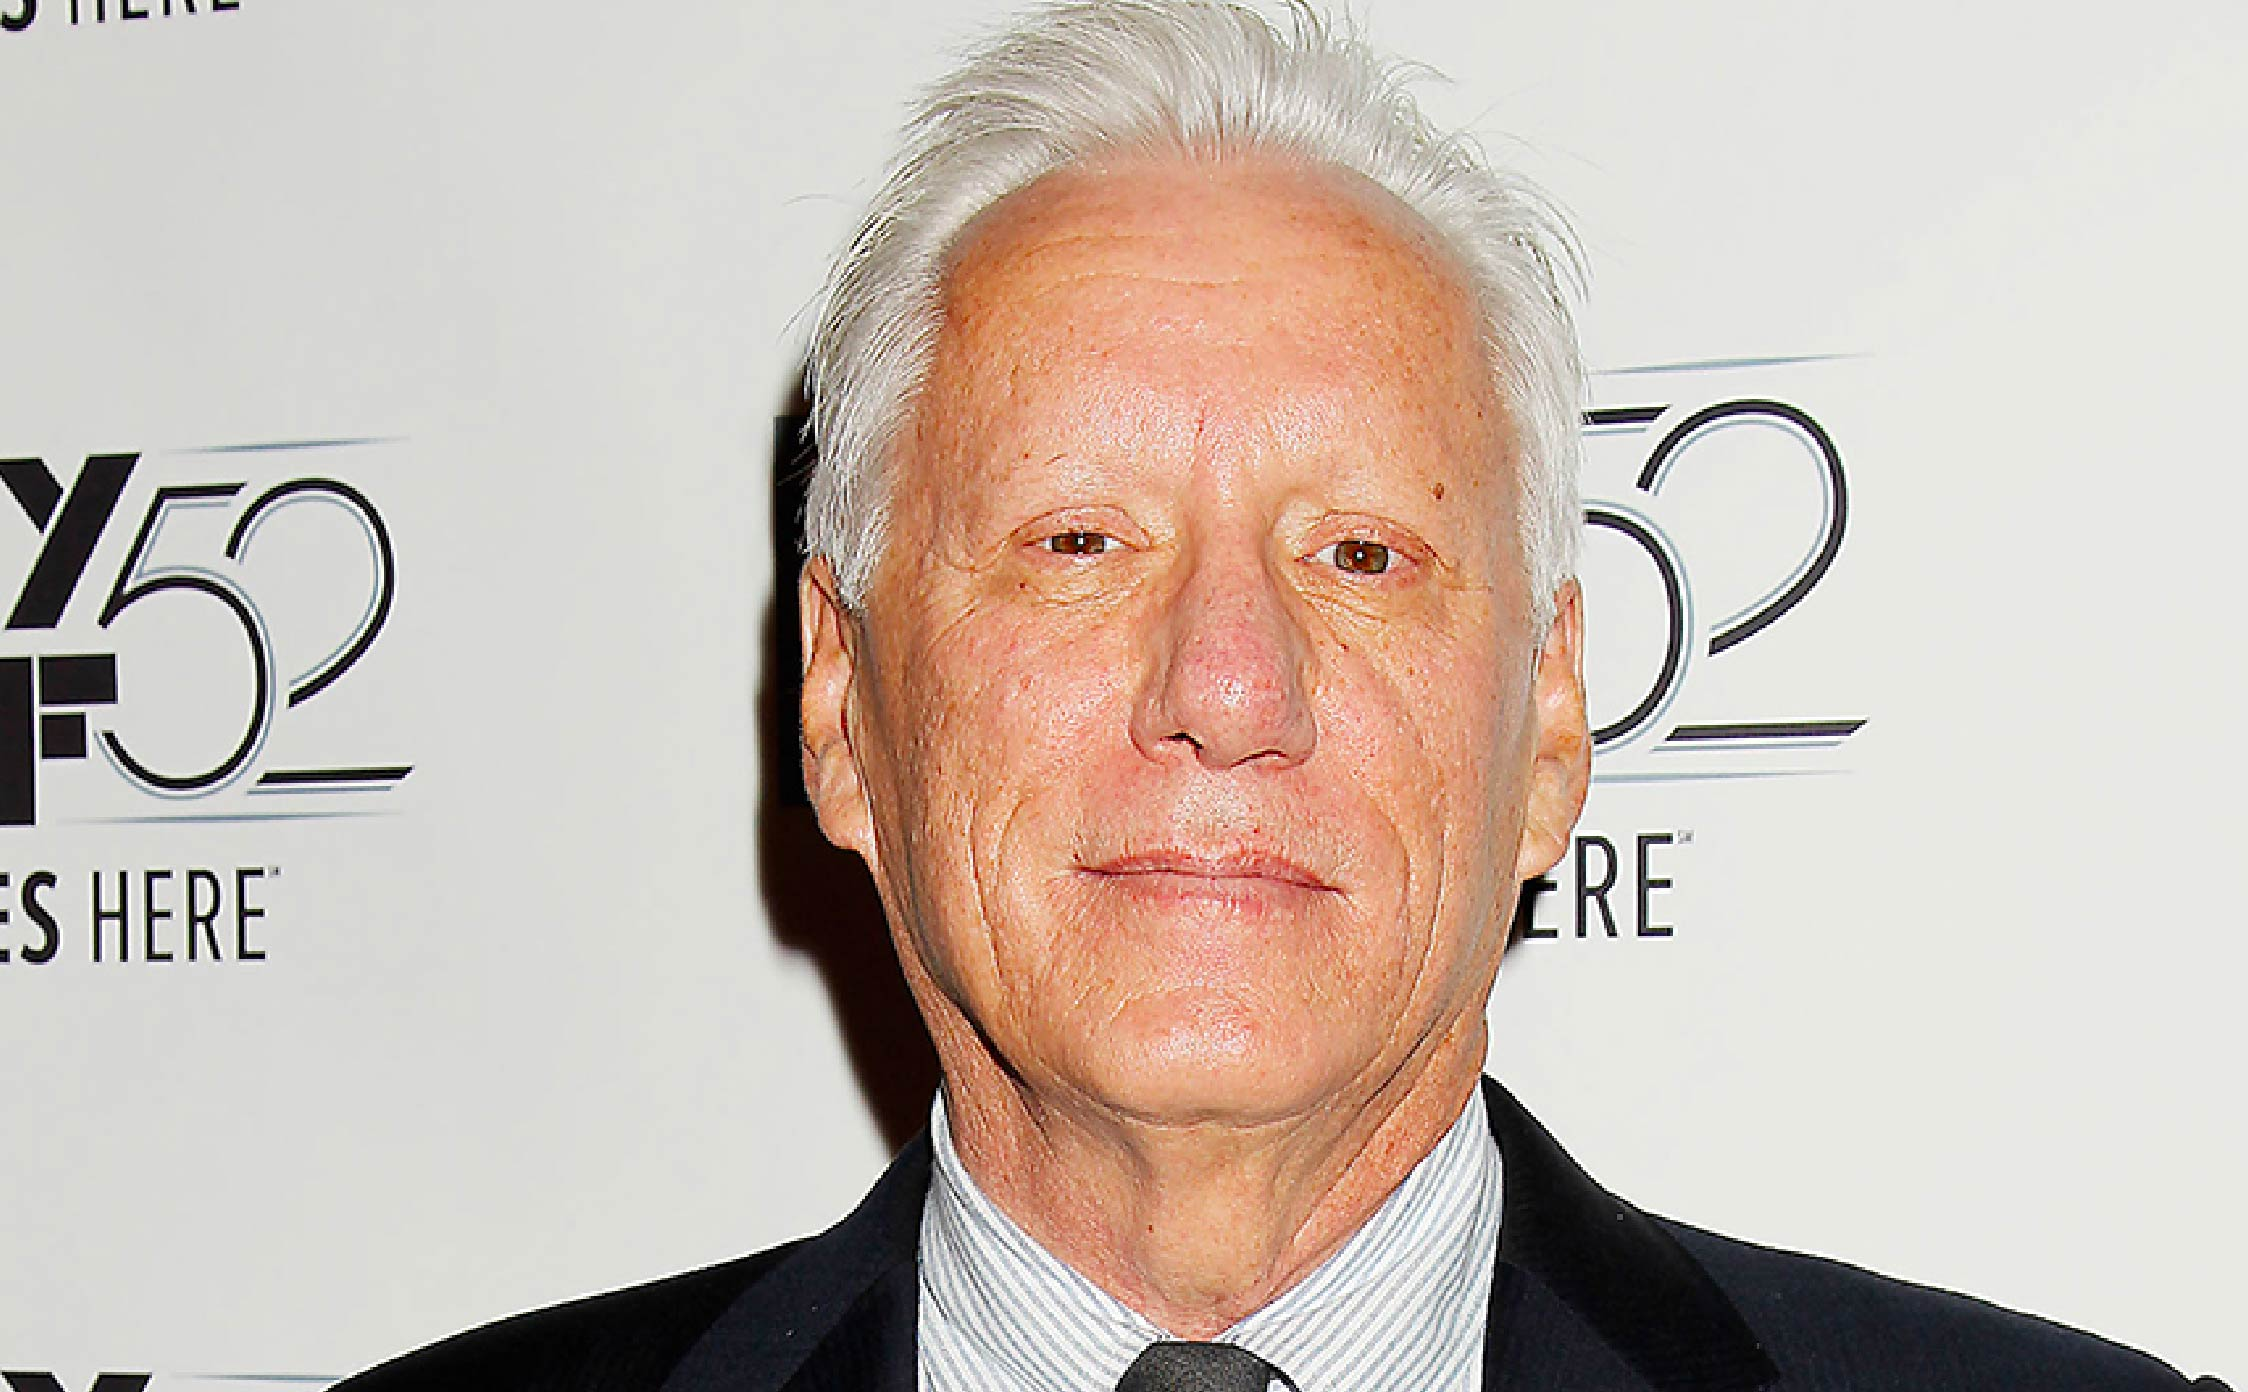 What Happened to James Woods? He Left the Political Fight When We Need Him Most...